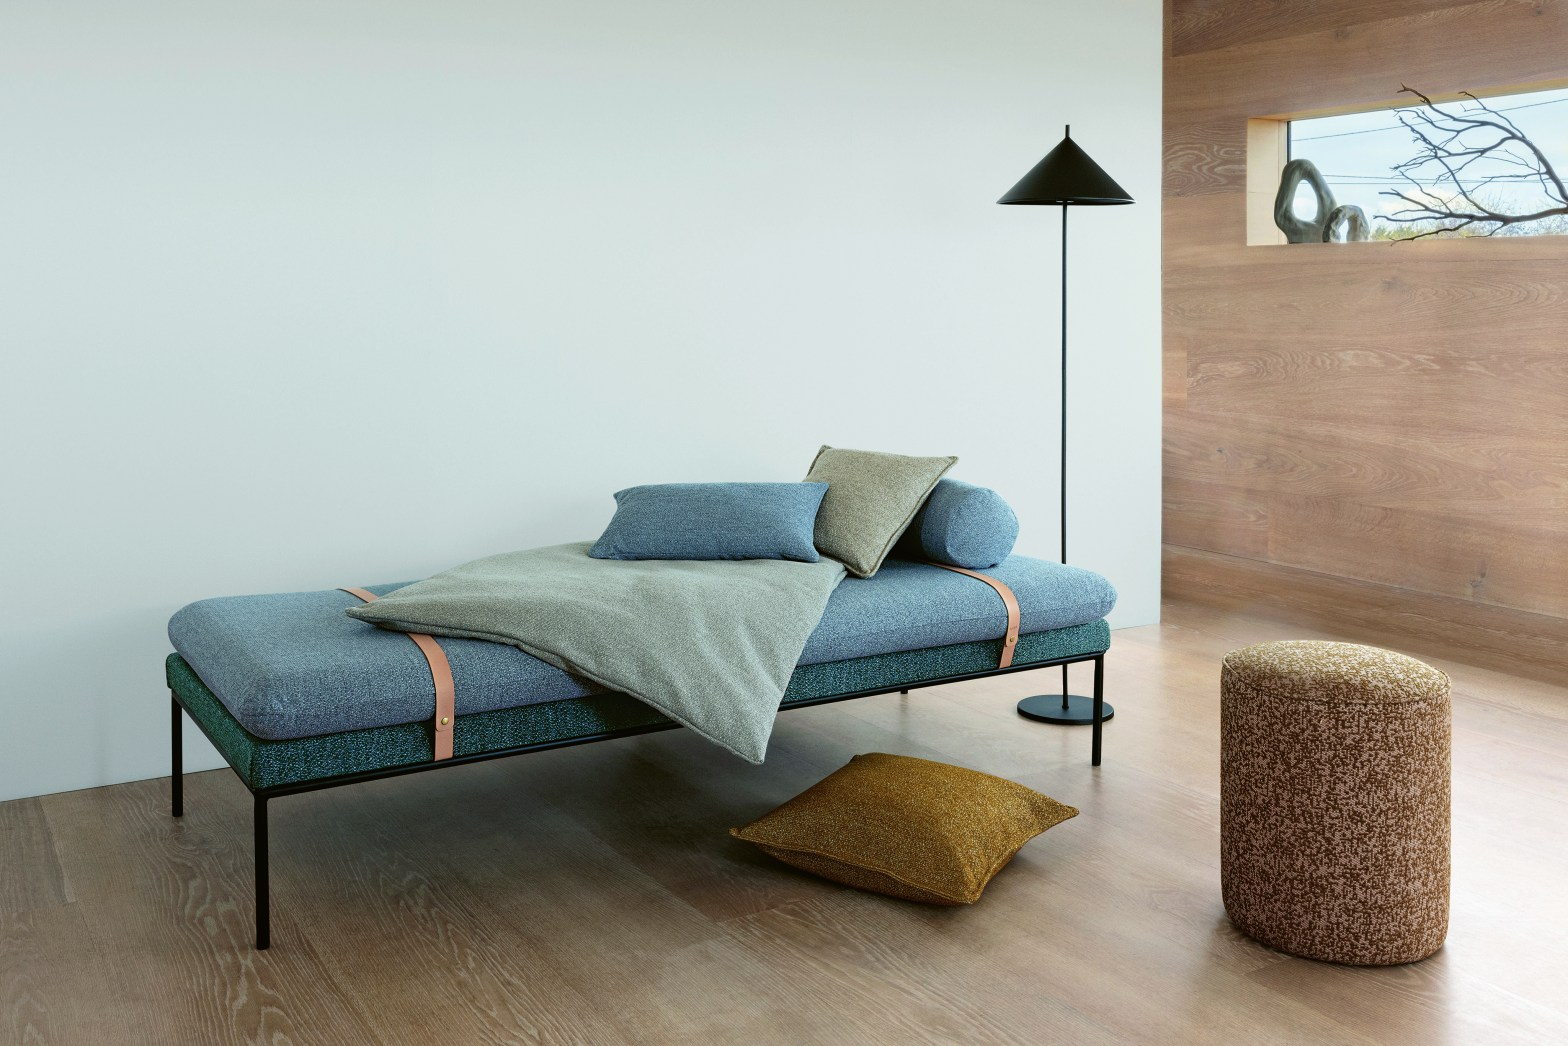 Image of eco-friendly fabrics by Kirkby Designs to illustrate how to tackle the big issue interior design, sustainability